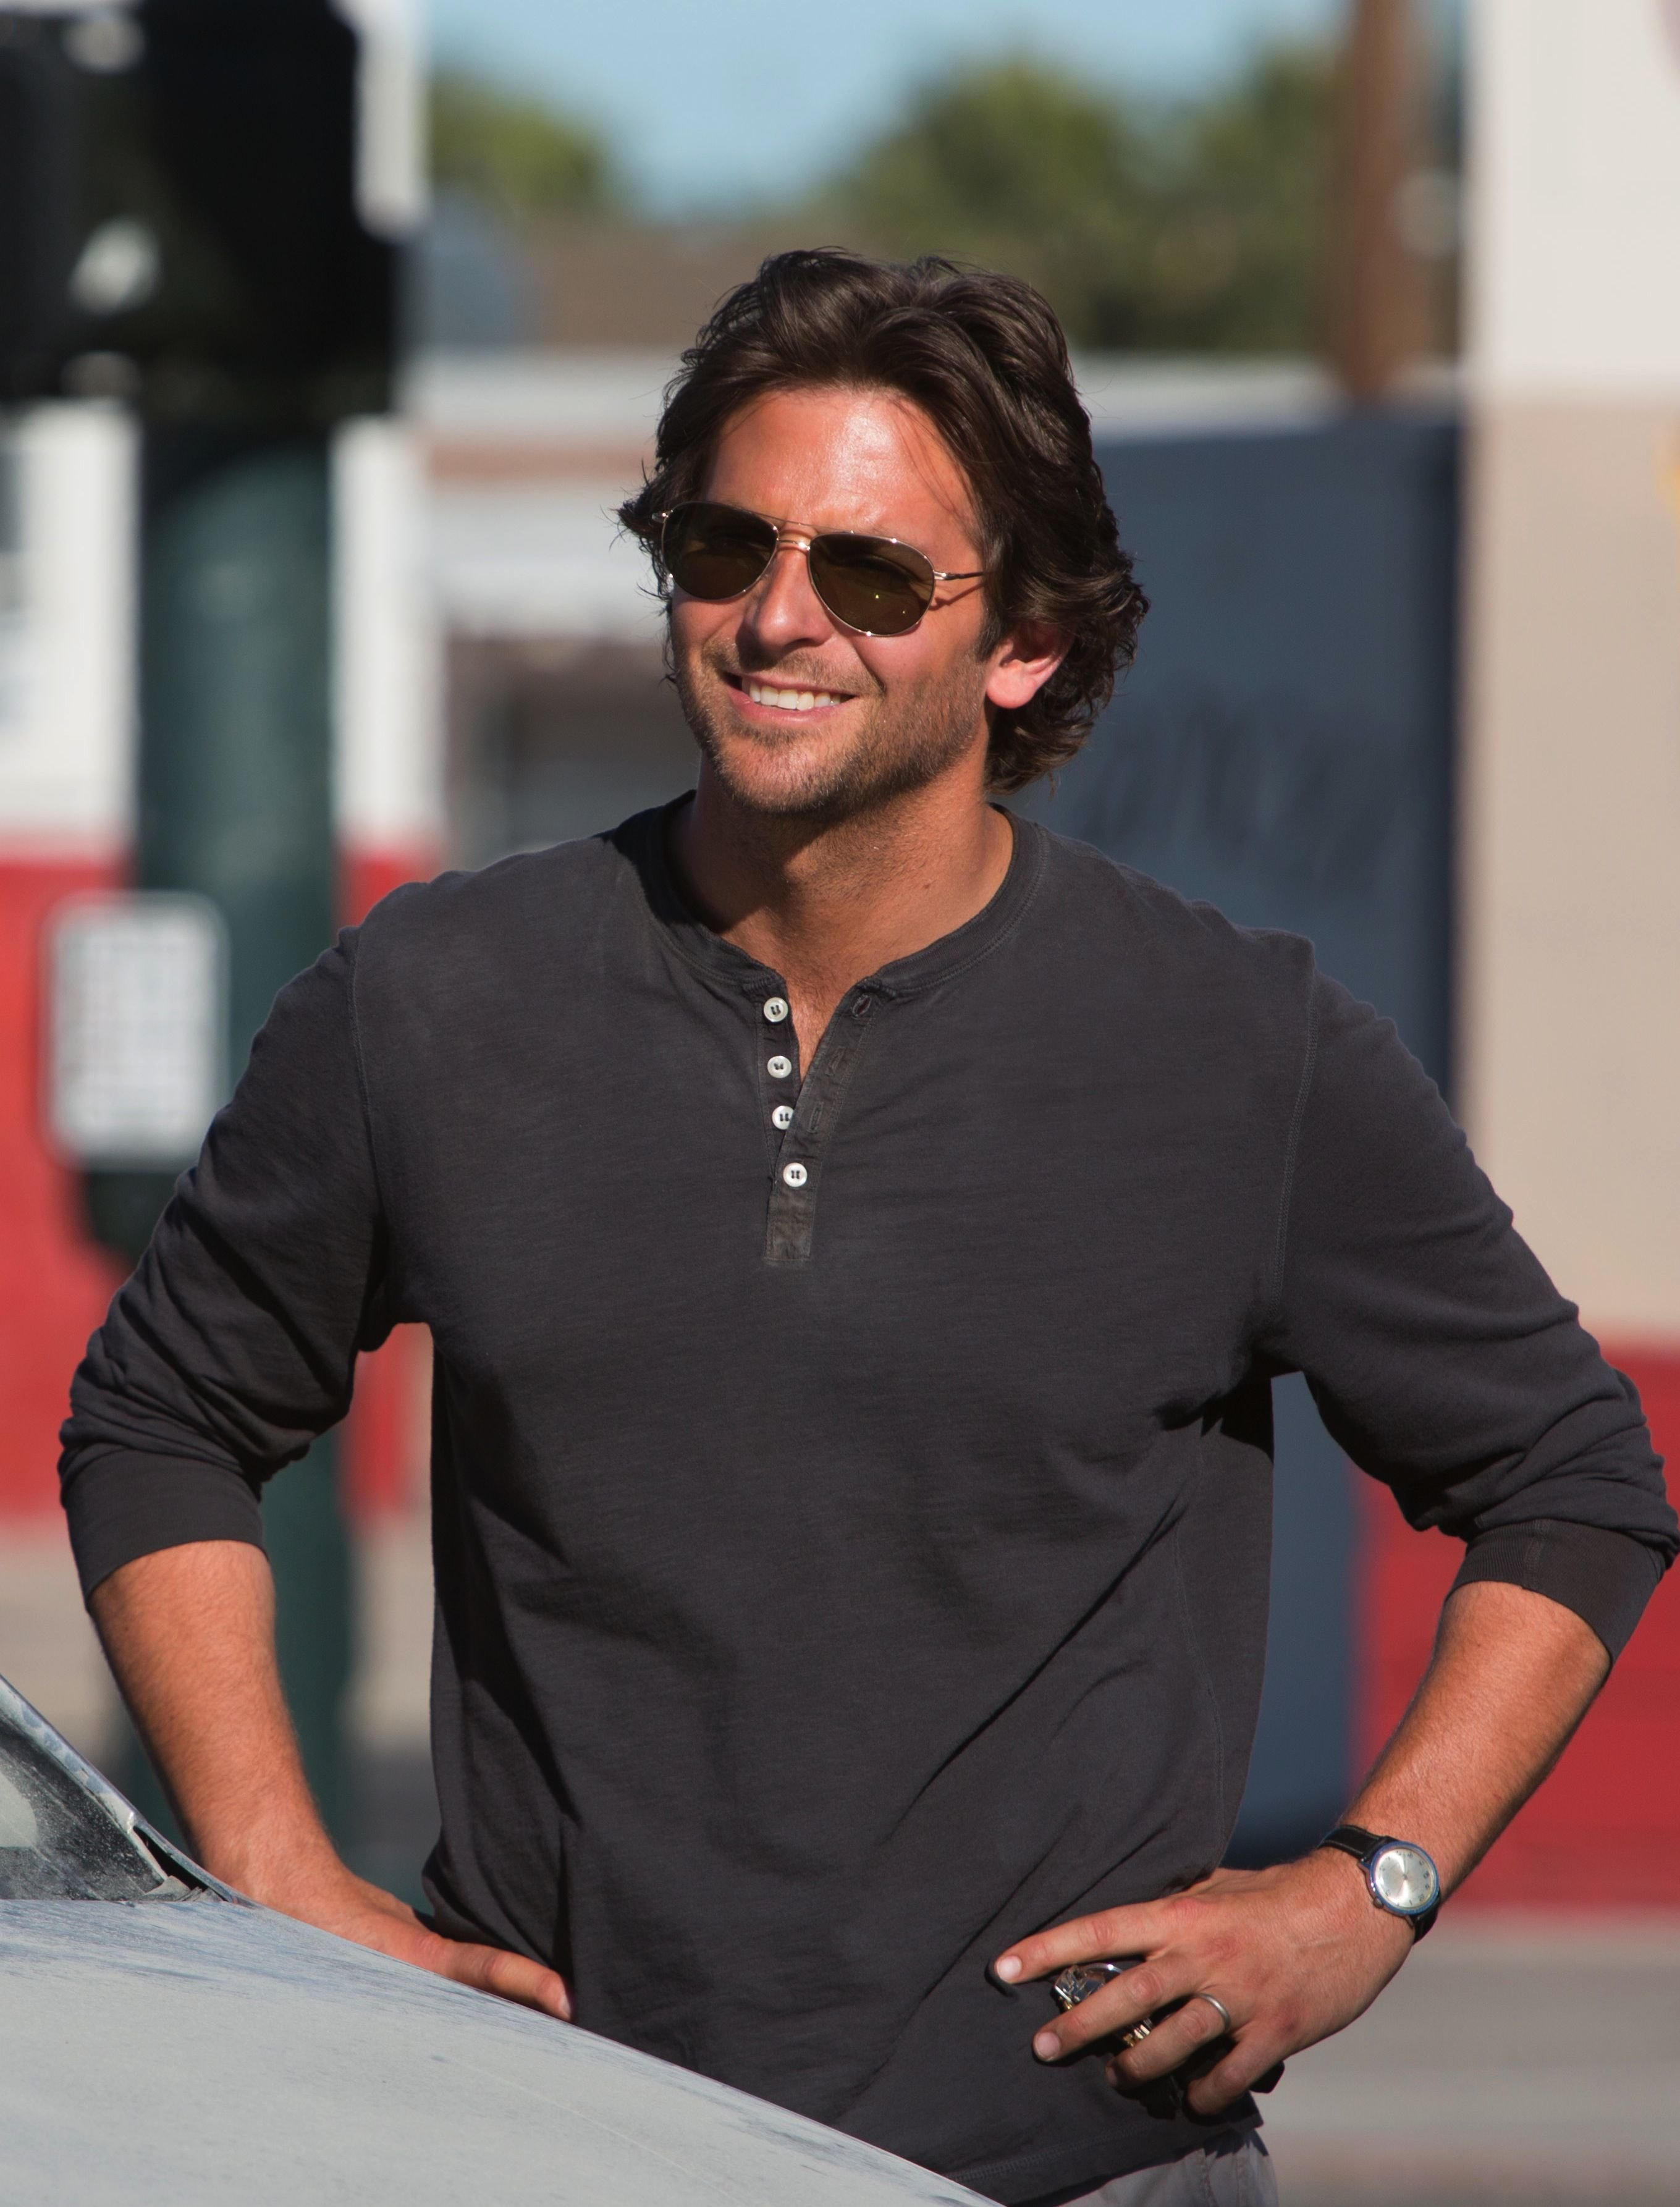 The Best See 20 Pictures Of Bradley Cooper Looking Hot In The Pictures